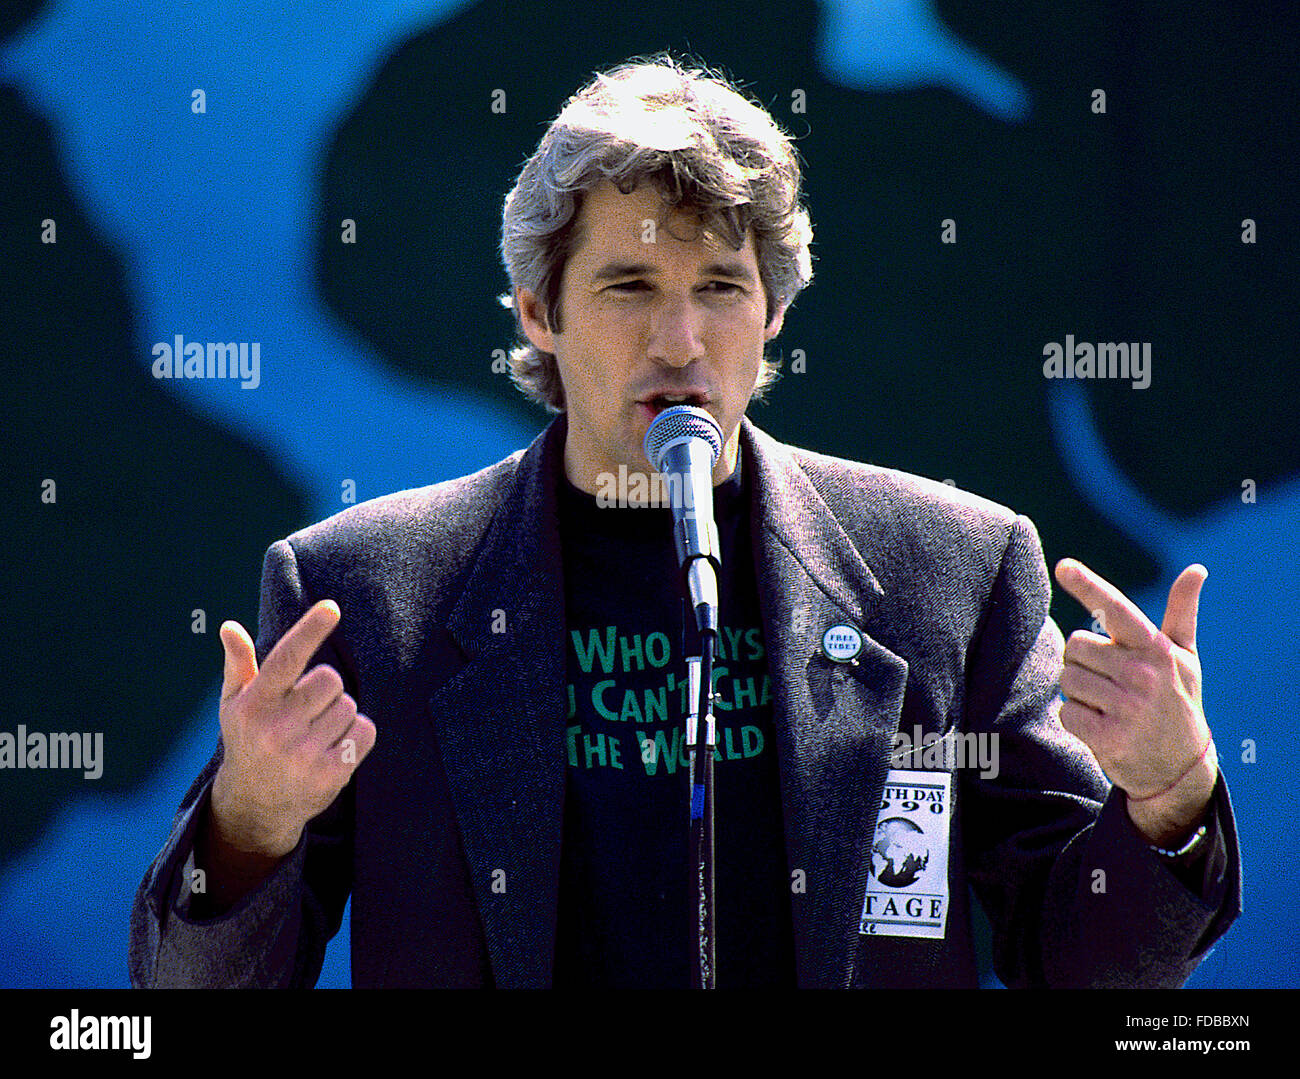 Washington, DC., USA, 22nd April, 1990 Richard Gere at Earth Day. Earth Day is an annual event, celebrated on April - Stock Image